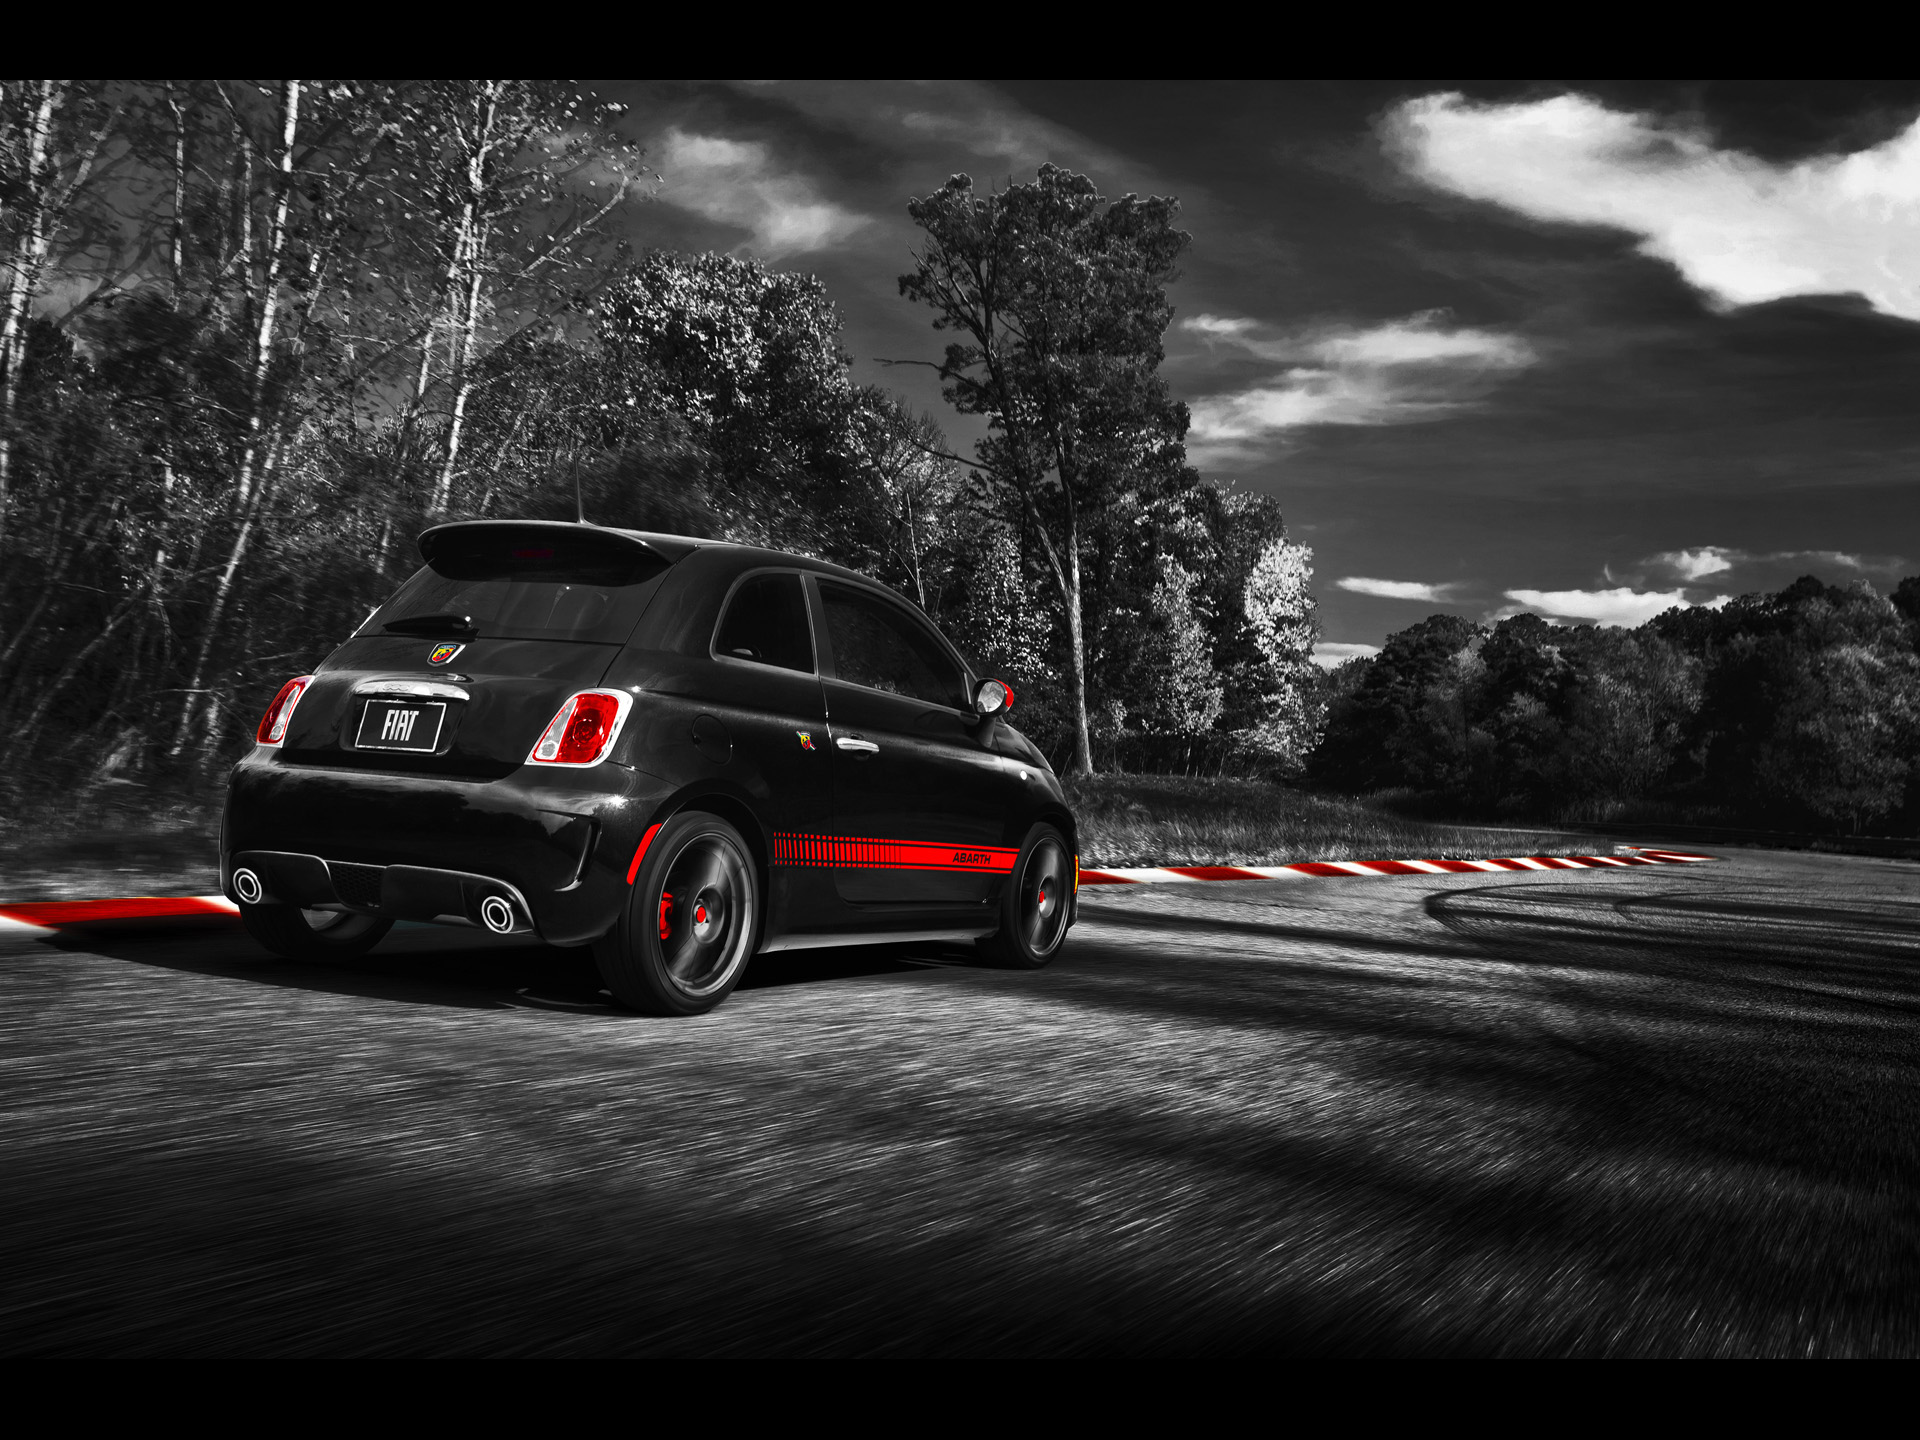 fiat 500 abarth spur hintergrundbilder fiat 500 abarth spur frei fotos. Black Bedroom Furniture Sets. Home Design Ideas